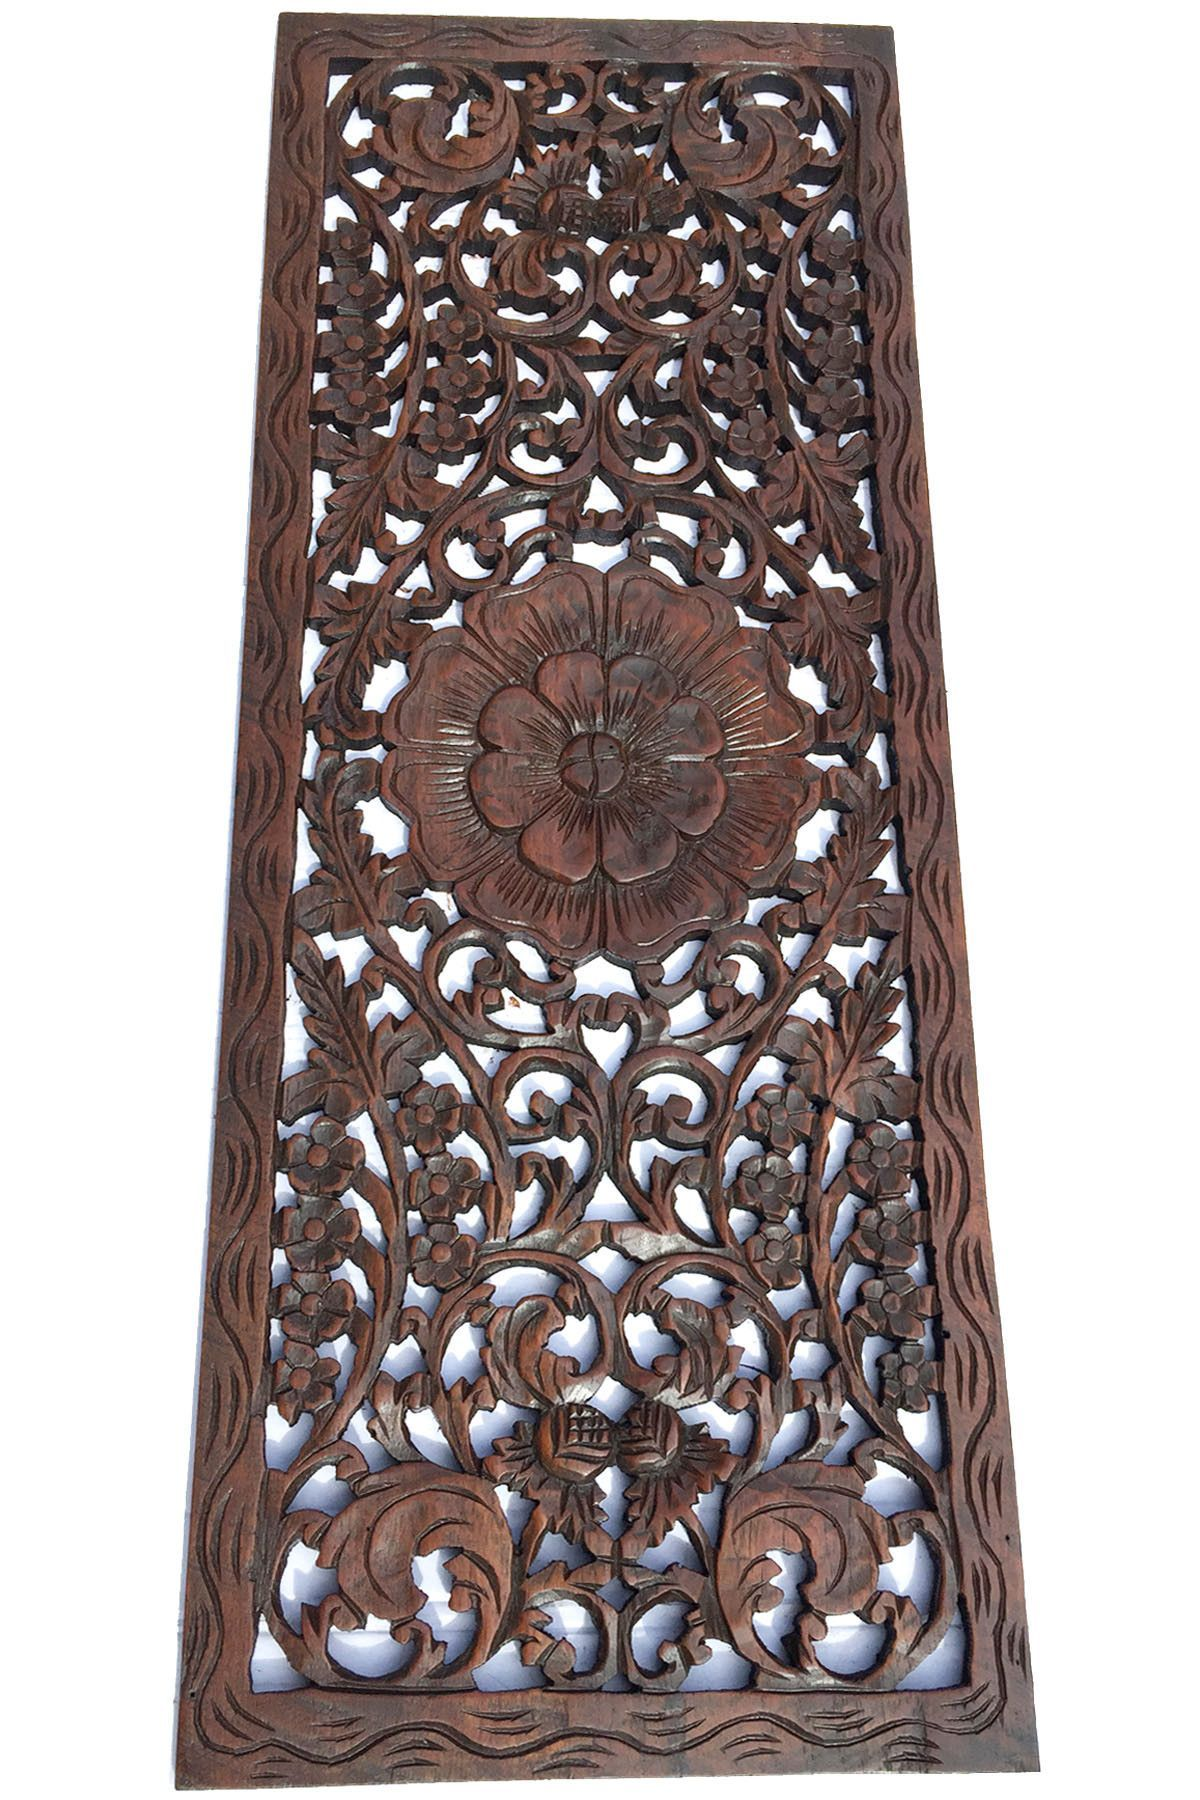 Floral wood carved wall panel rustic home decor carving wood plaque